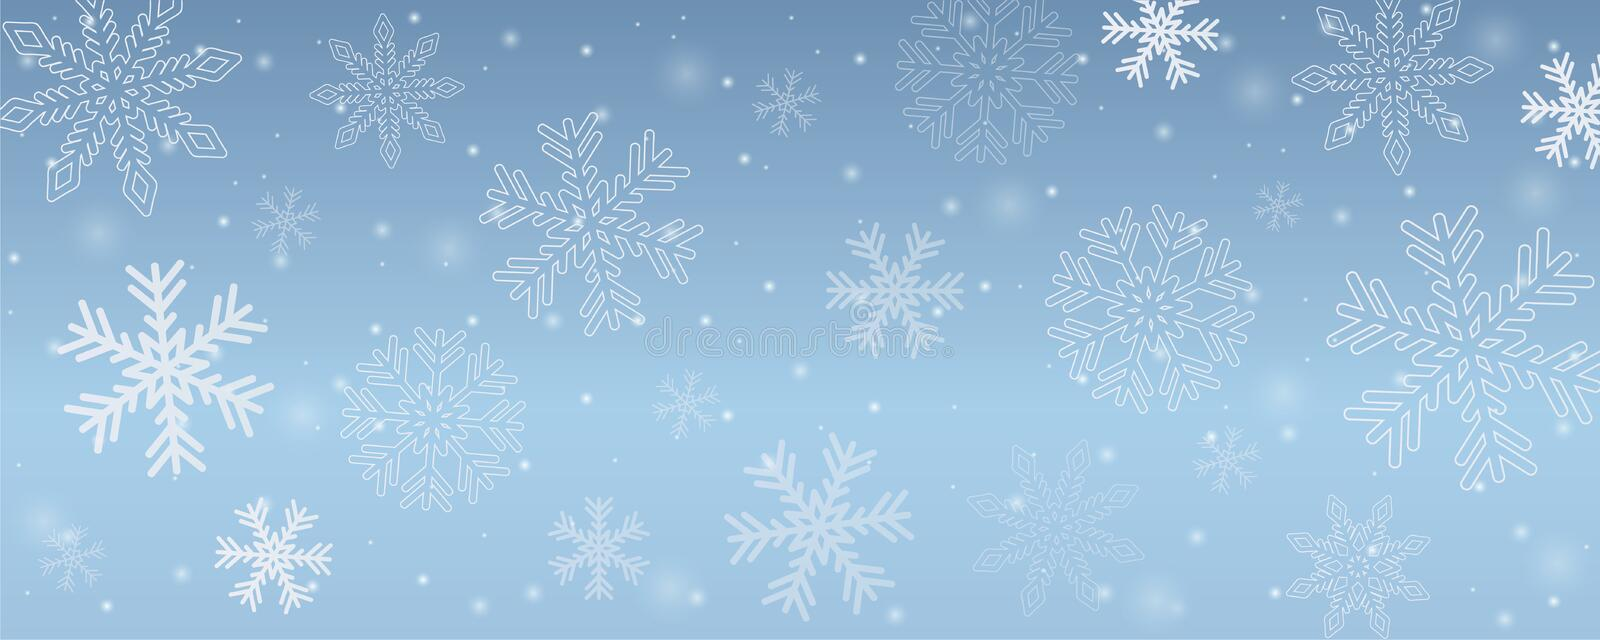 Snowy winter background snowflakes in blue sky vector illustration